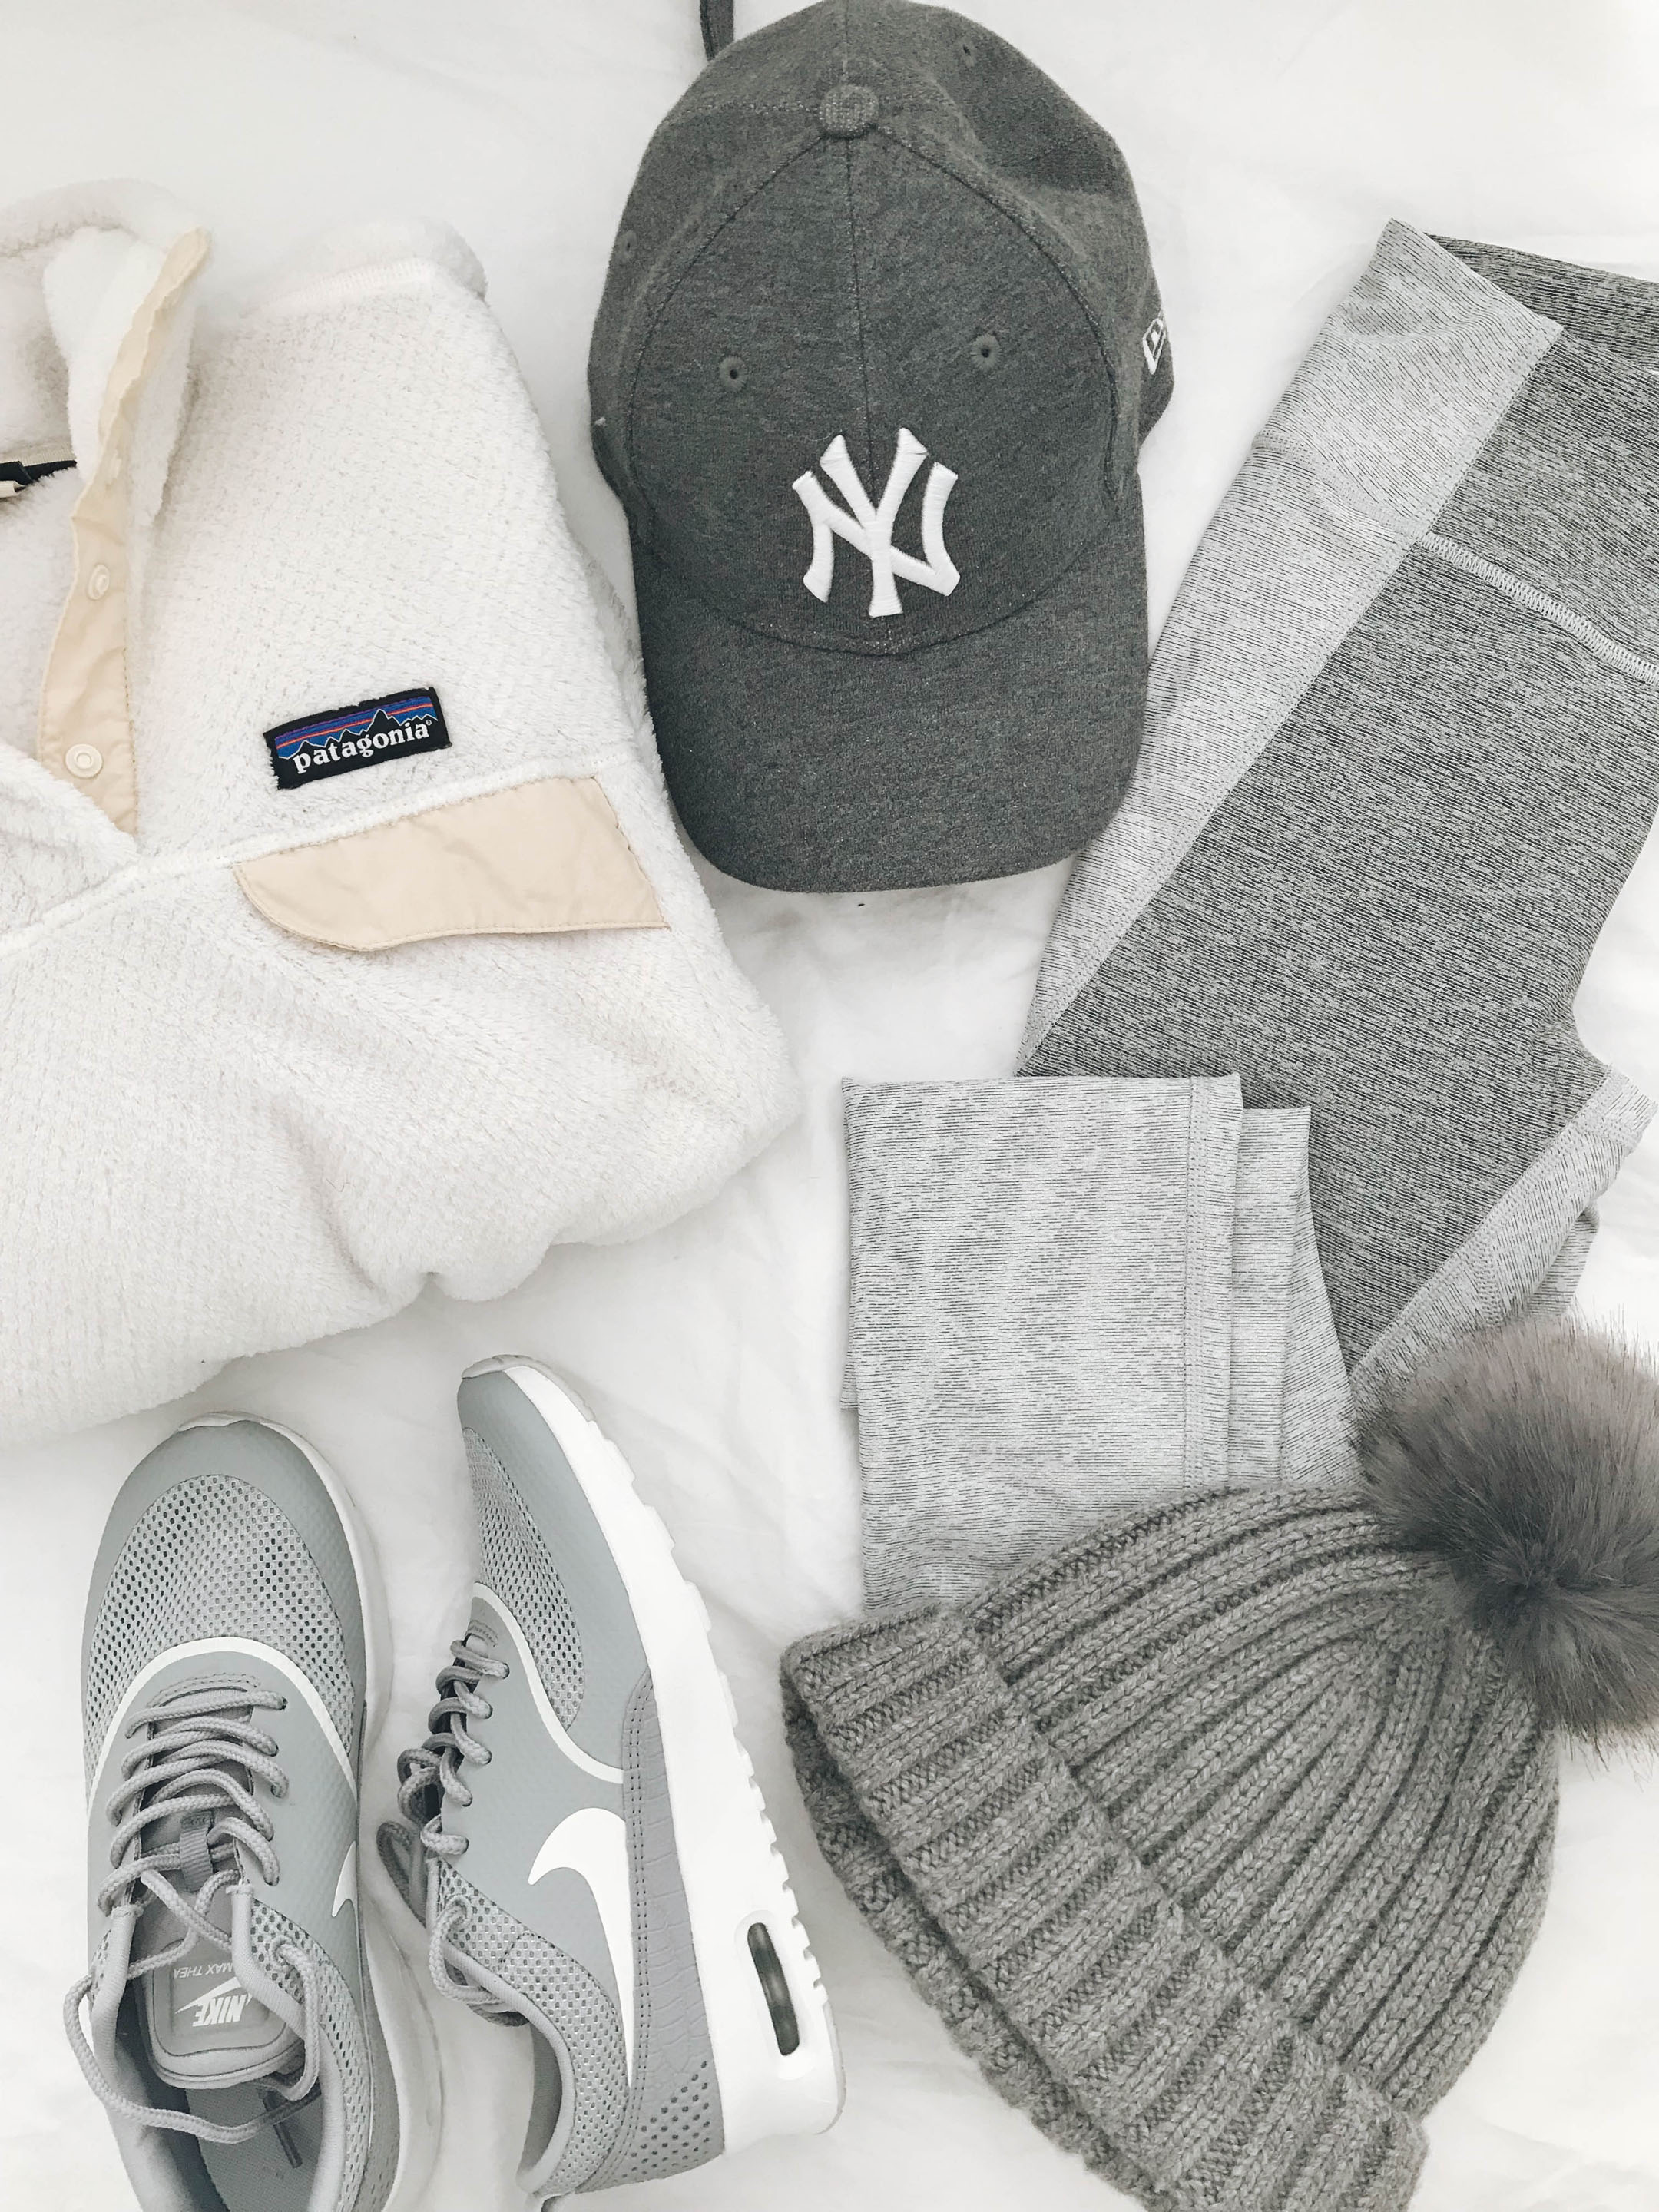 gray and white athleisure outfit inspiration